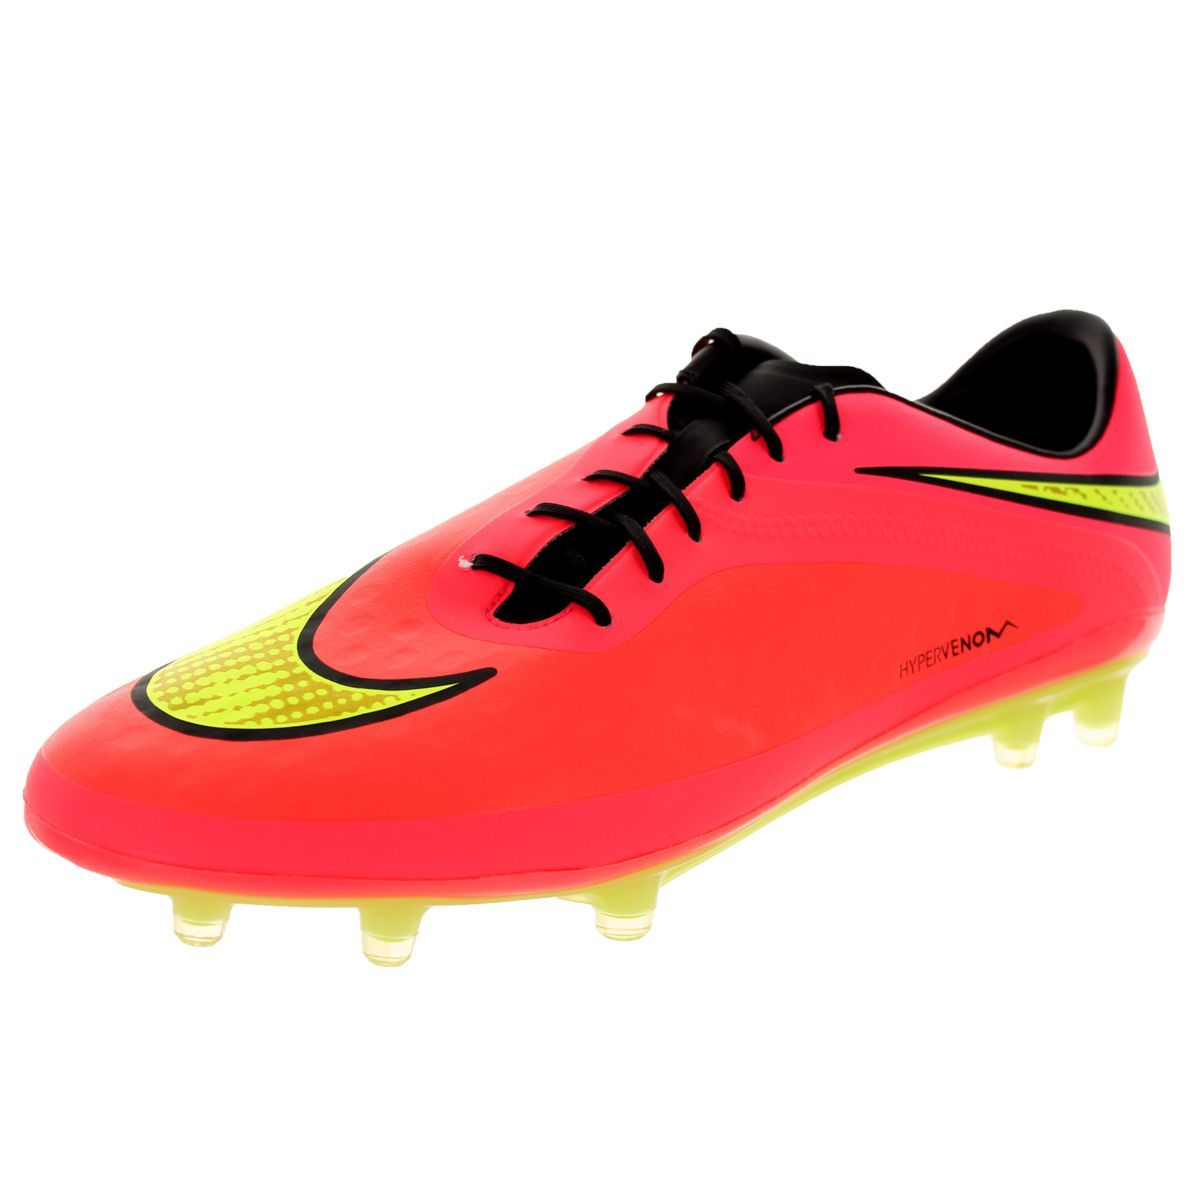 Bend it like Beckham on that pitch with these Nike men's Hypervenom Phatal soccer  cleats.